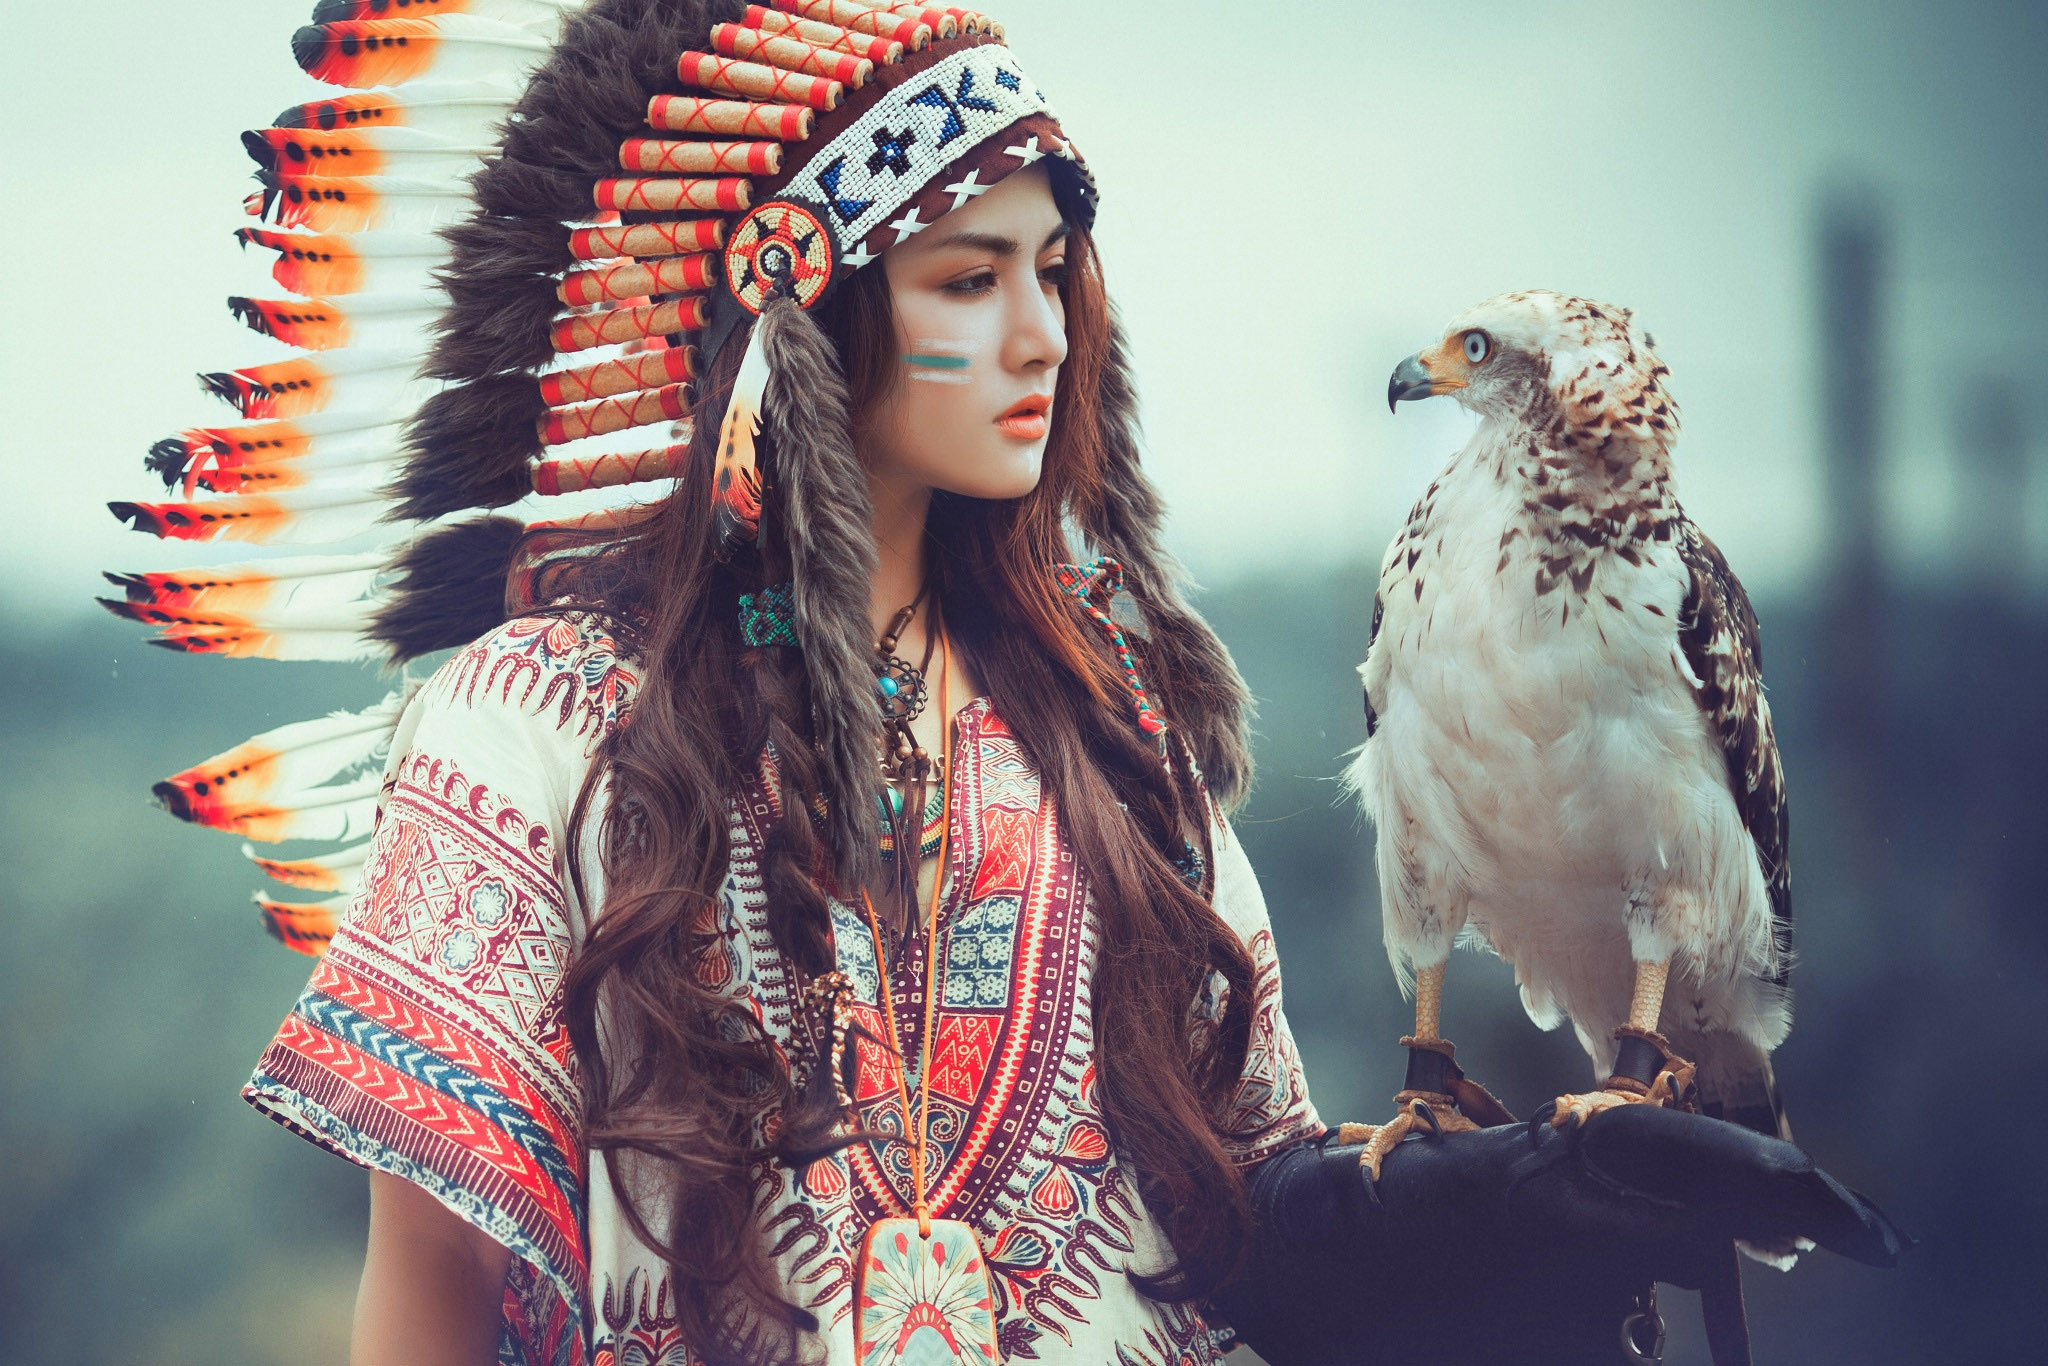 2048x1366 Beautiful Girl - American Indian Style Version 2.0 - Beautiful Girl - American  Indian Style Version